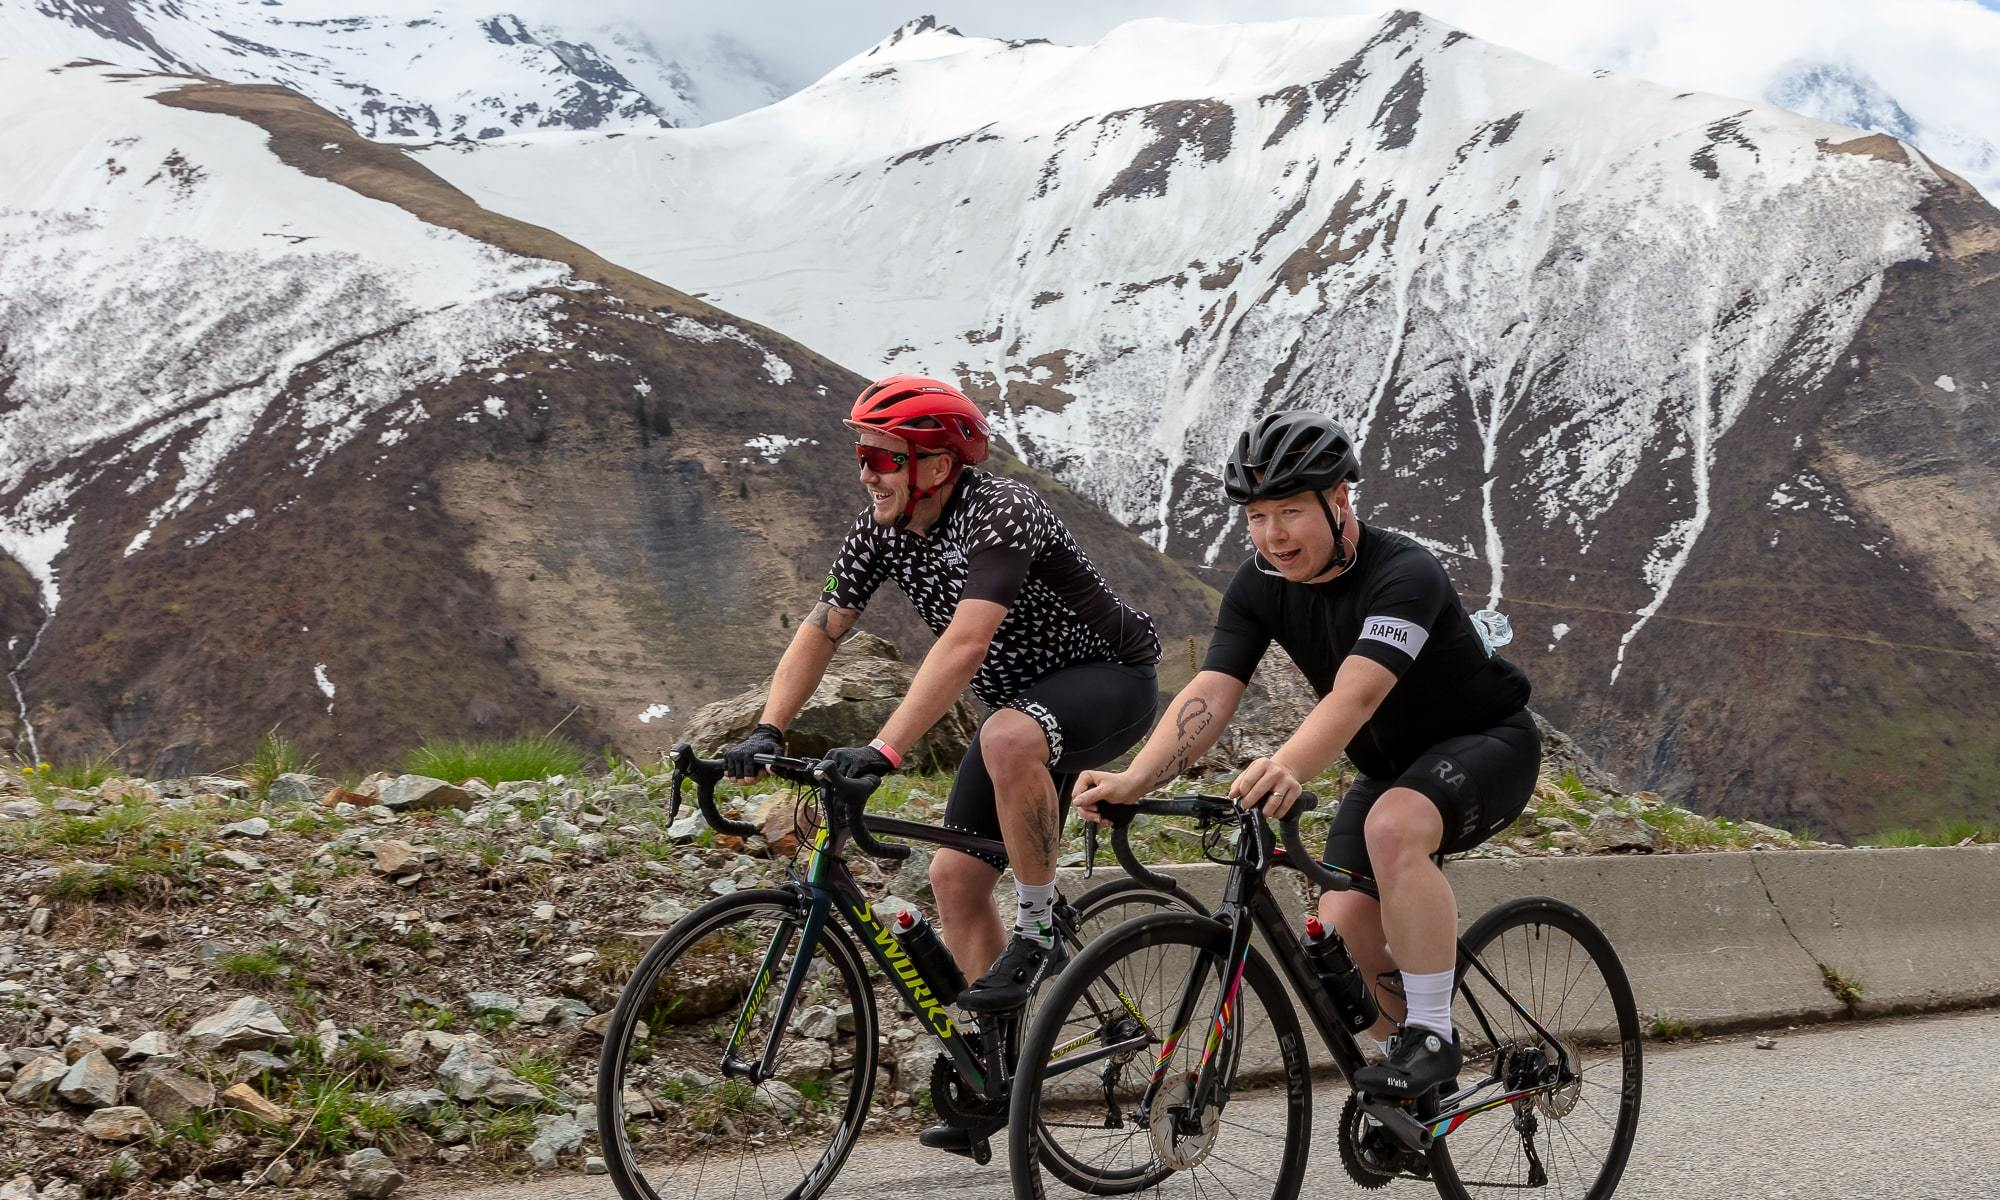 Two cyclists climbing the Croix de Fer